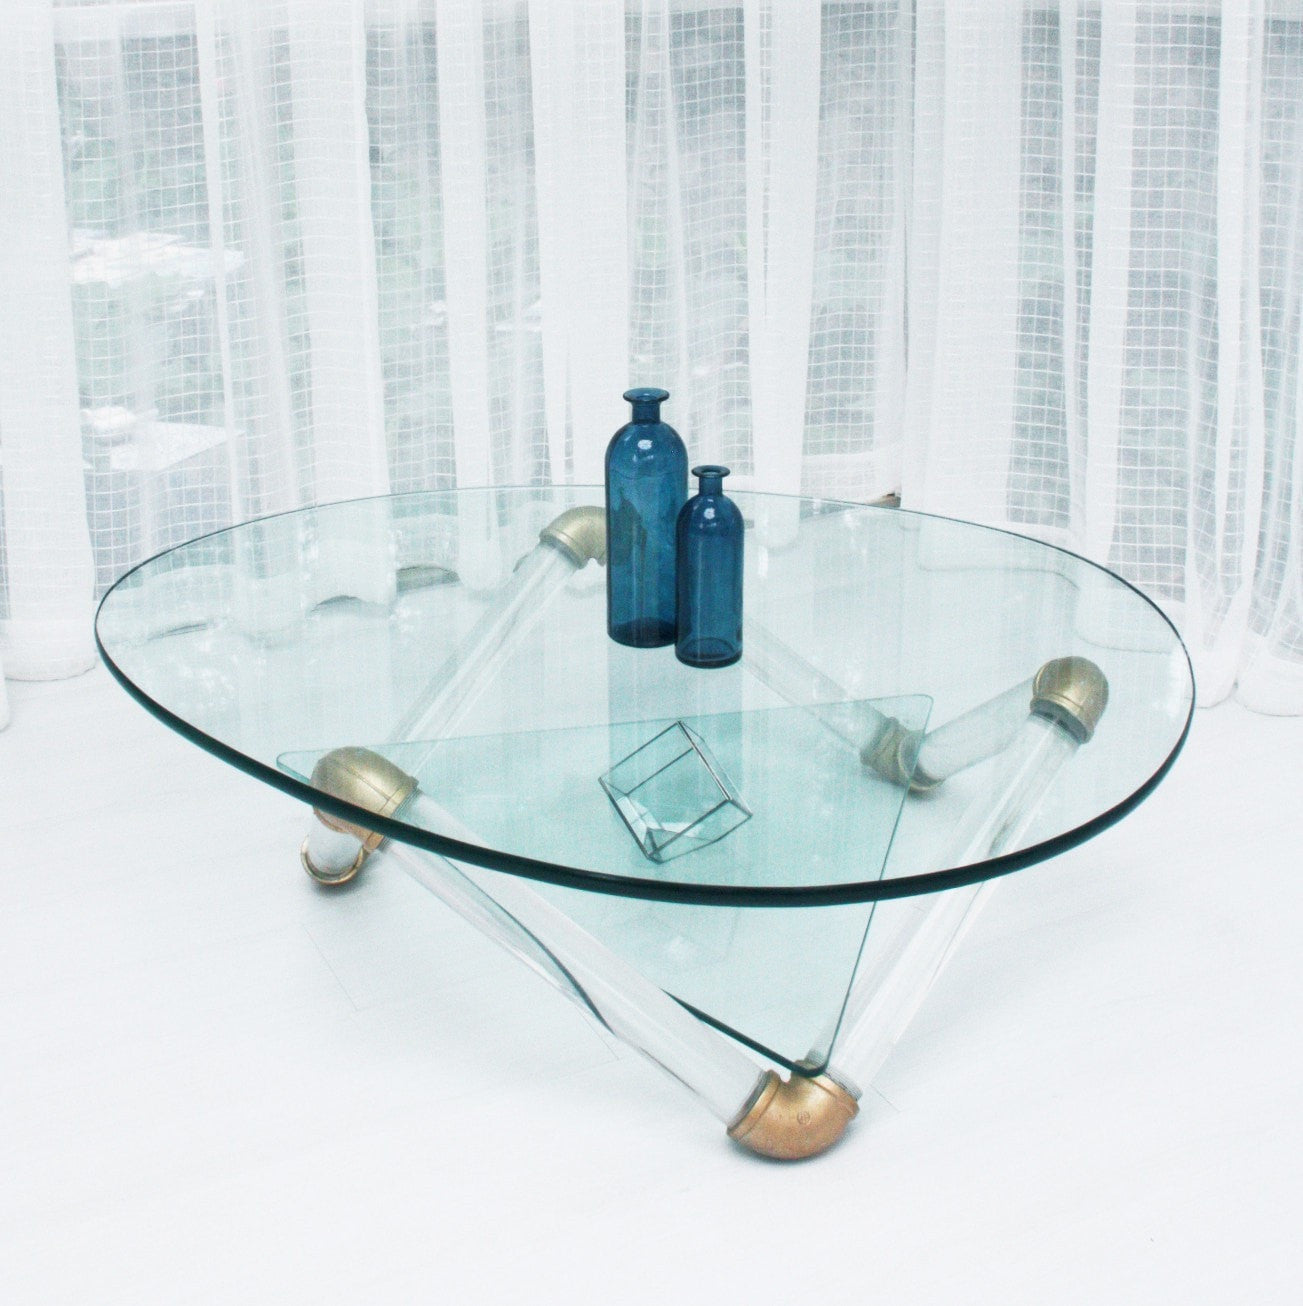 Buy infinity coffee table by lifeix at lifeix design for only 99900 table infinity coffee table by lifeix geotapseo Image collections